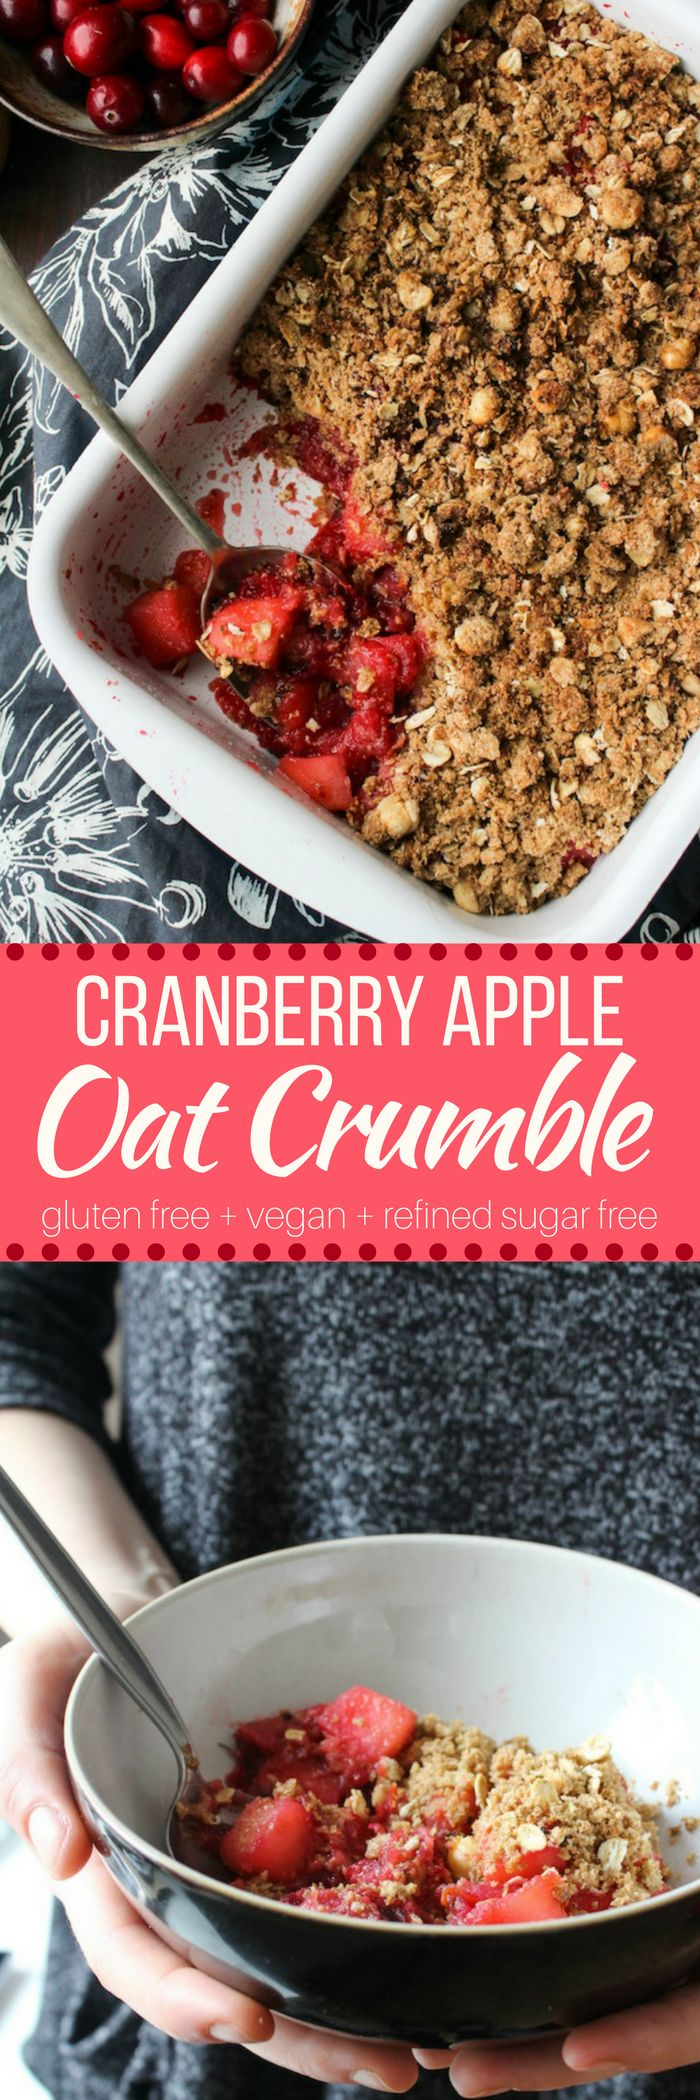 Sweet & tangy Cranberry Apple Crumble topped with an oat & hazelnut topping. Gluten free + Dairy Free + Vegan + Refined Sugar Free